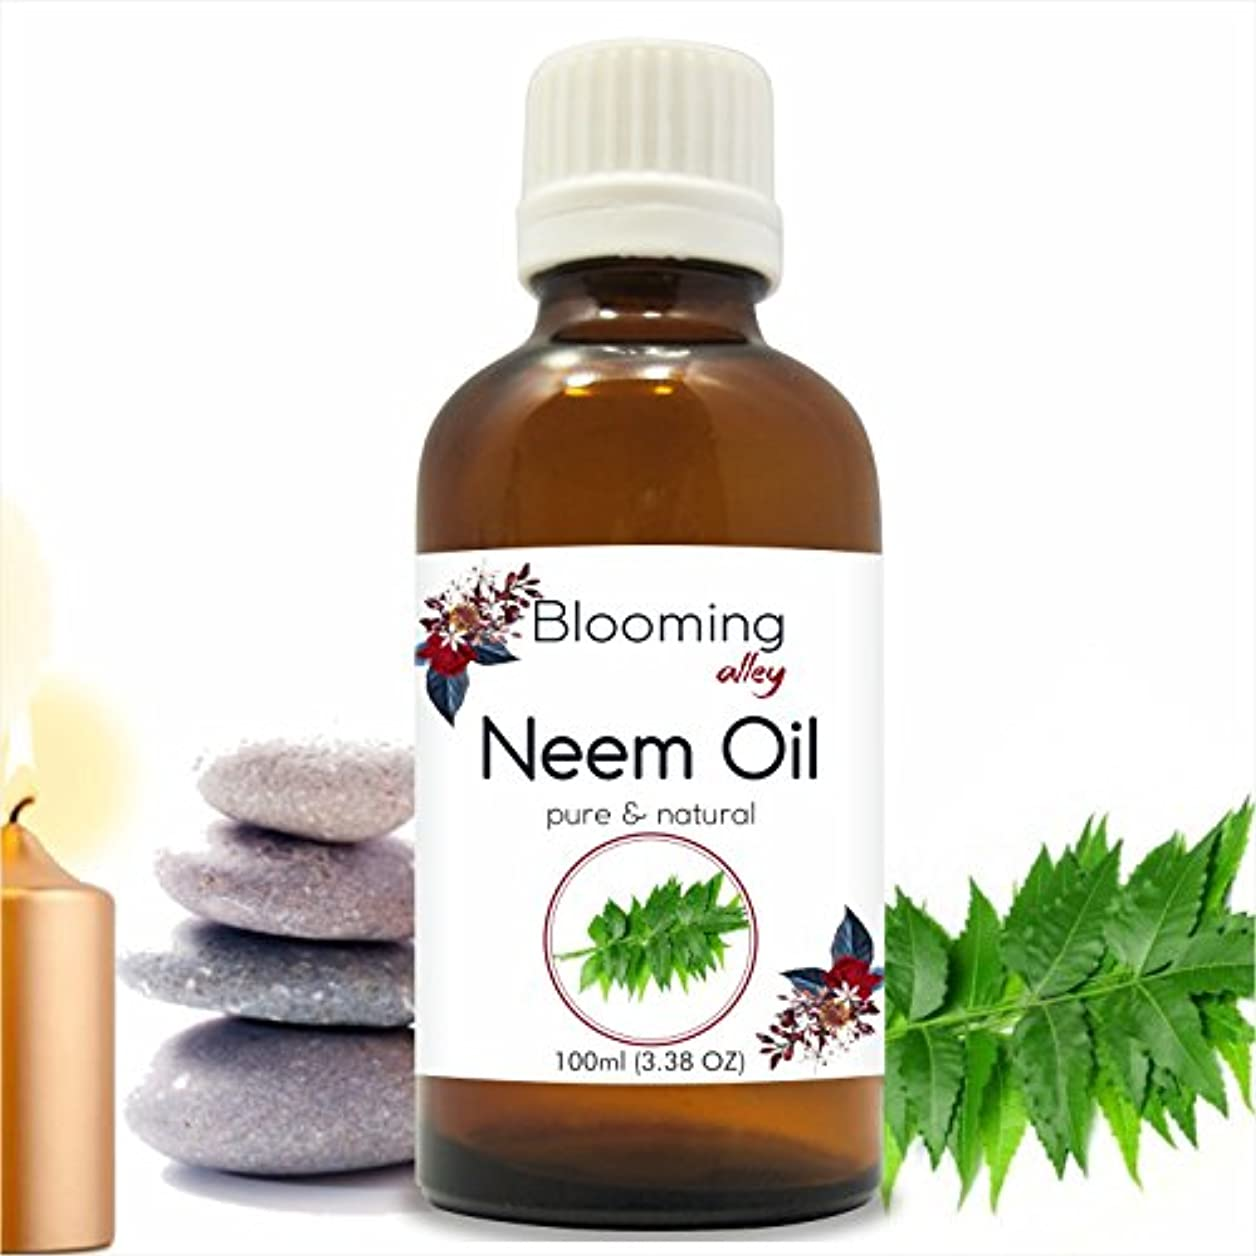 Neem Oil (Azadirachta Indica) Essential Oil 100 ml or 3.38 Fl Oz by Blooming Alley